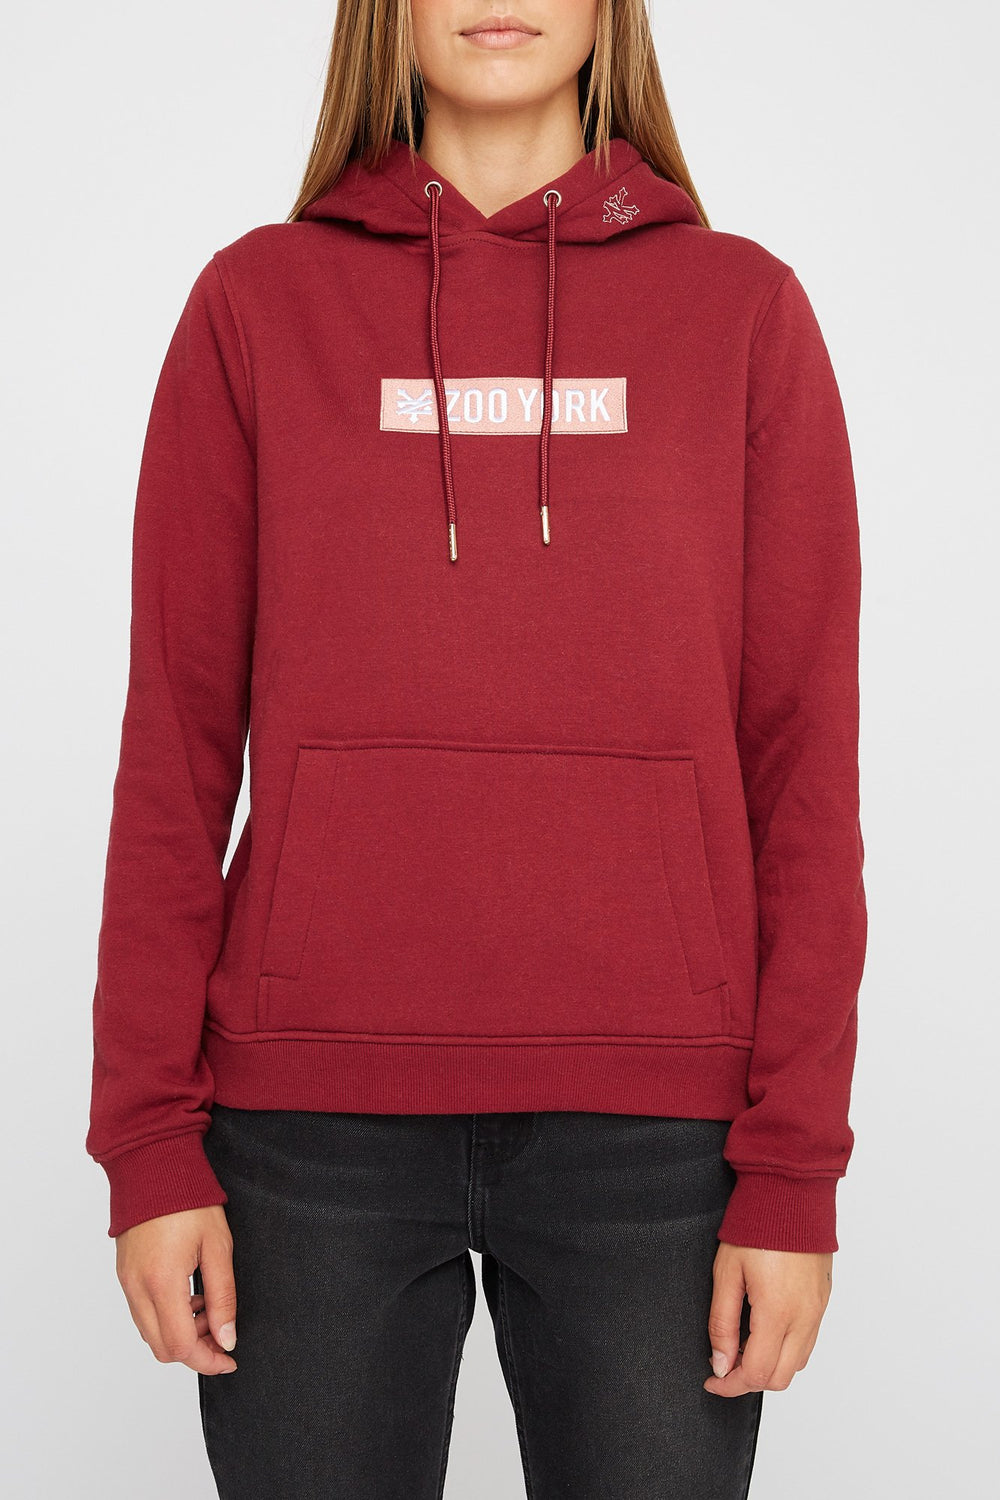 Zoo York Womens Box Logo Hoodie Burgundy